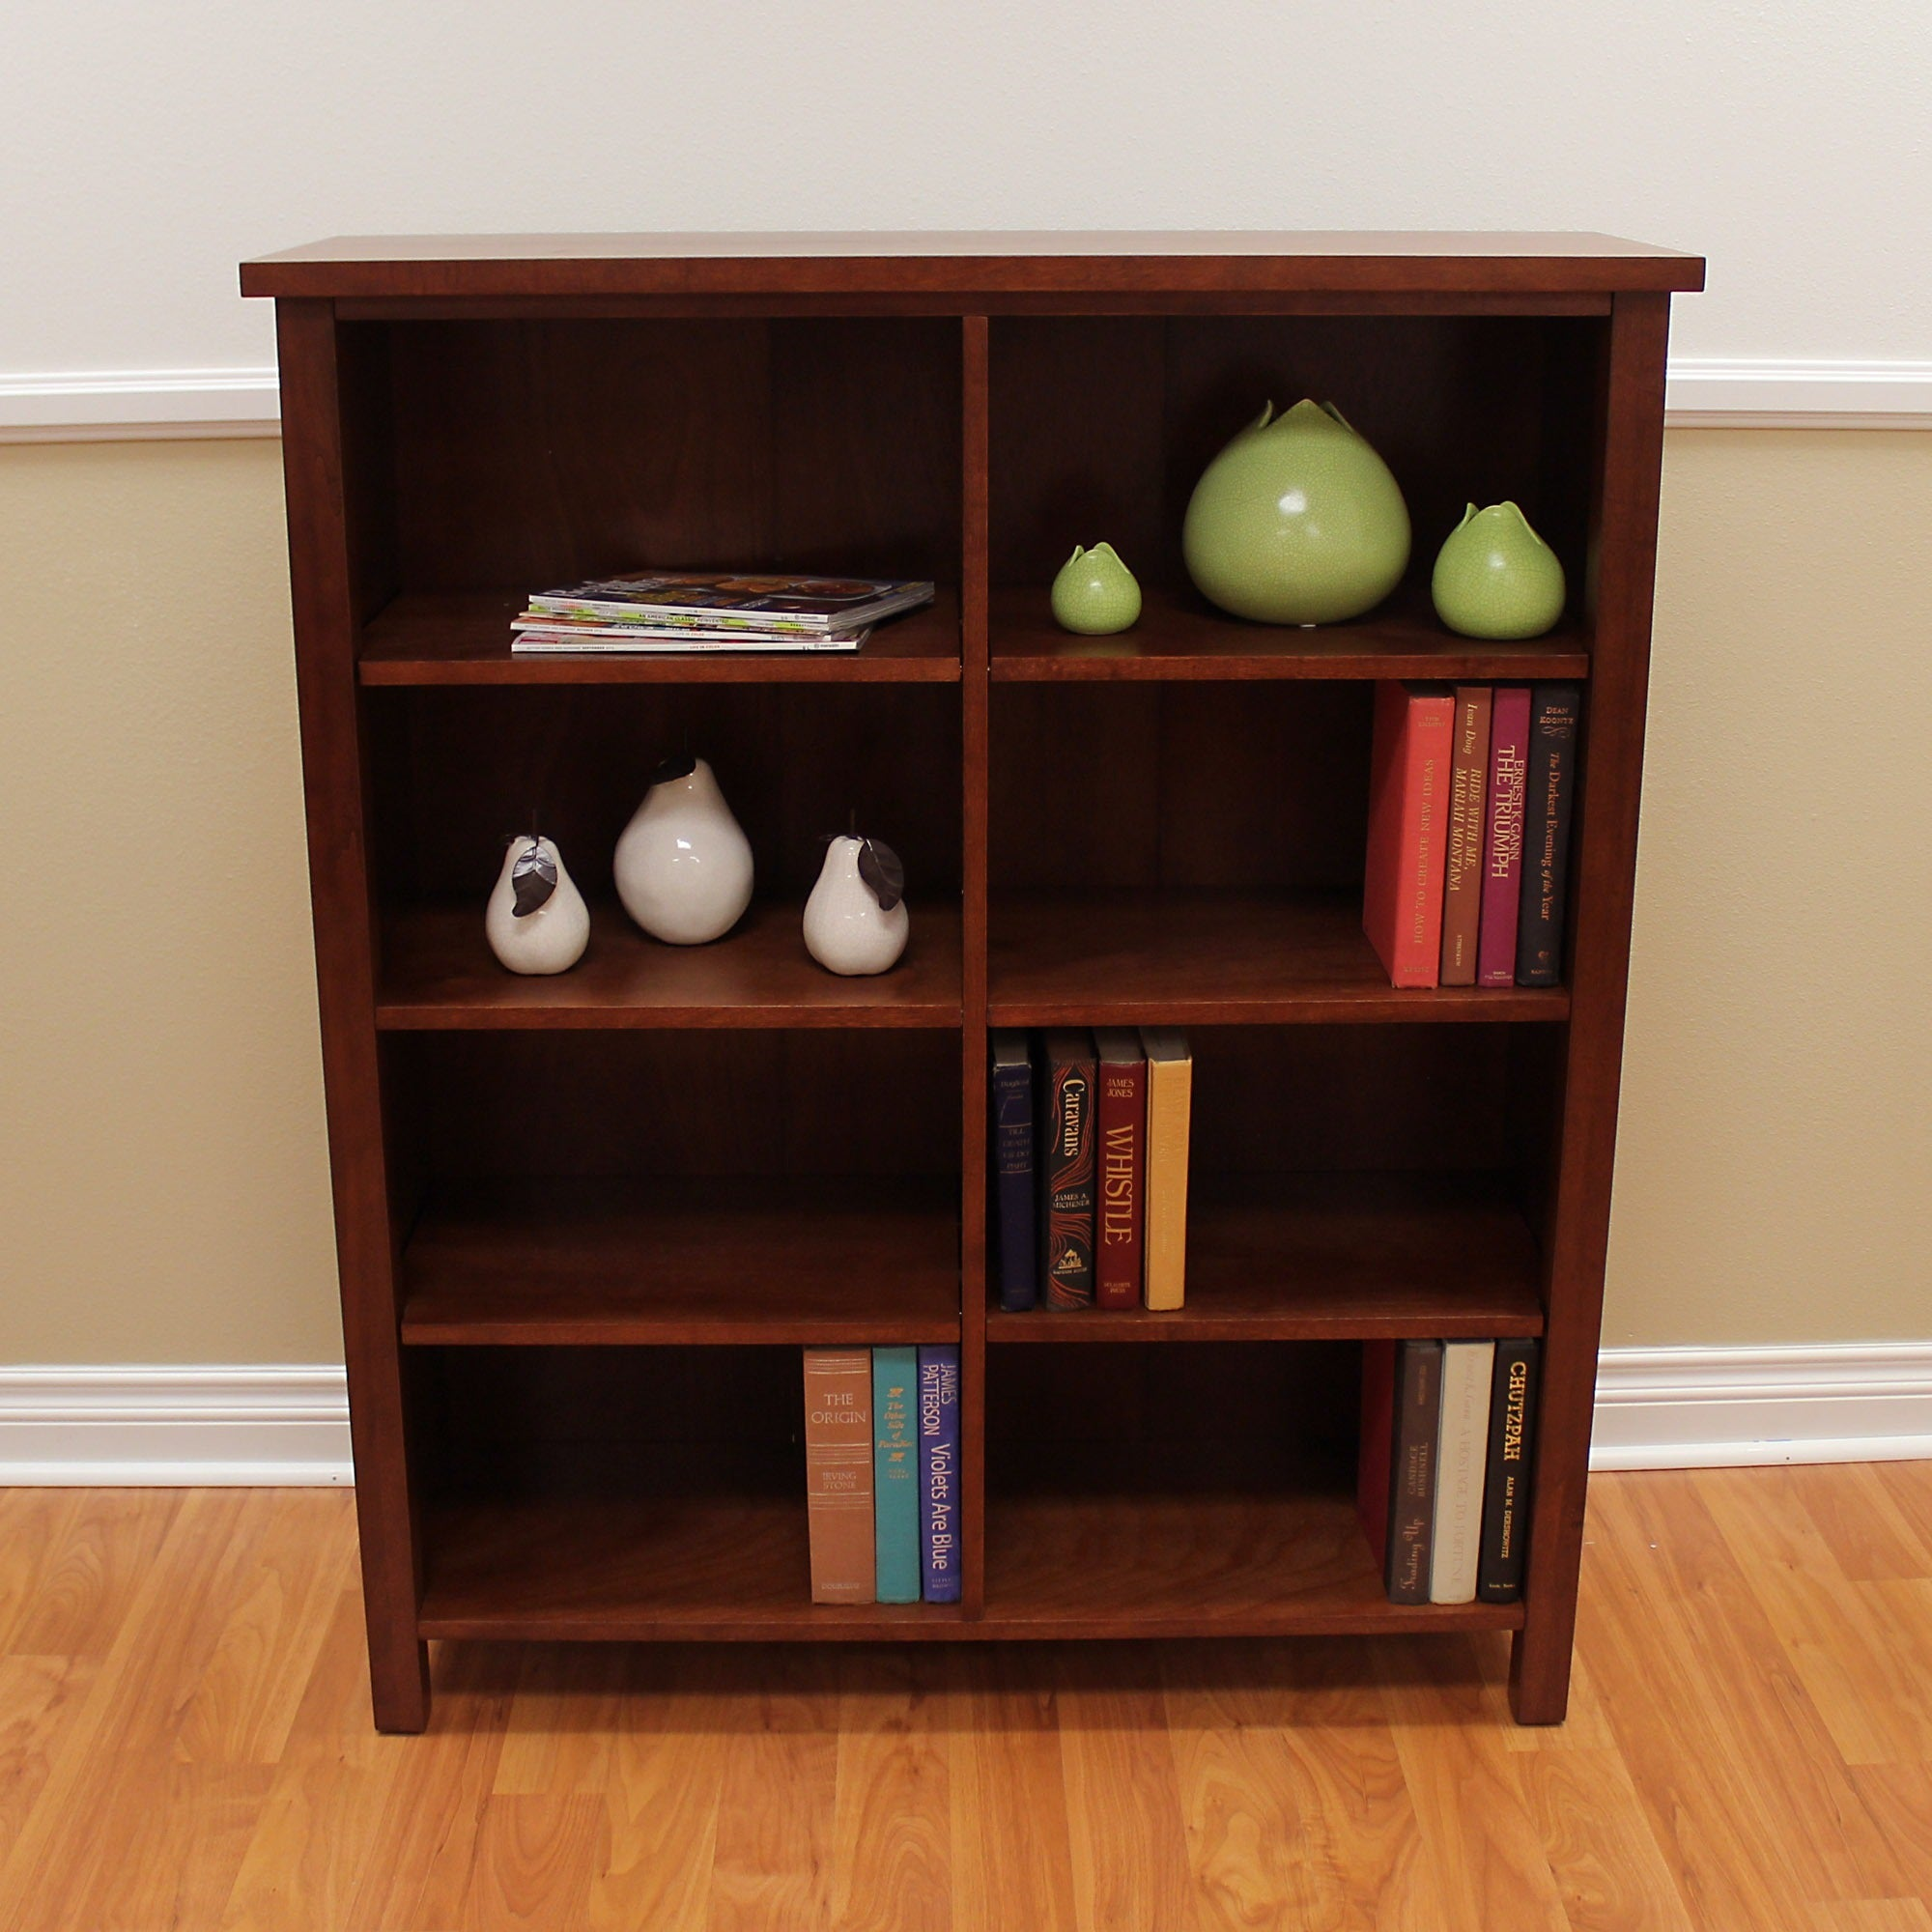 book varnished chair bookcases storage wall floor double guide flower shelf s bed bookcase chericrauses contemporary vase bookshelves part buying white frame stained single wooden picture wide modern cabinet brown tile chericrause